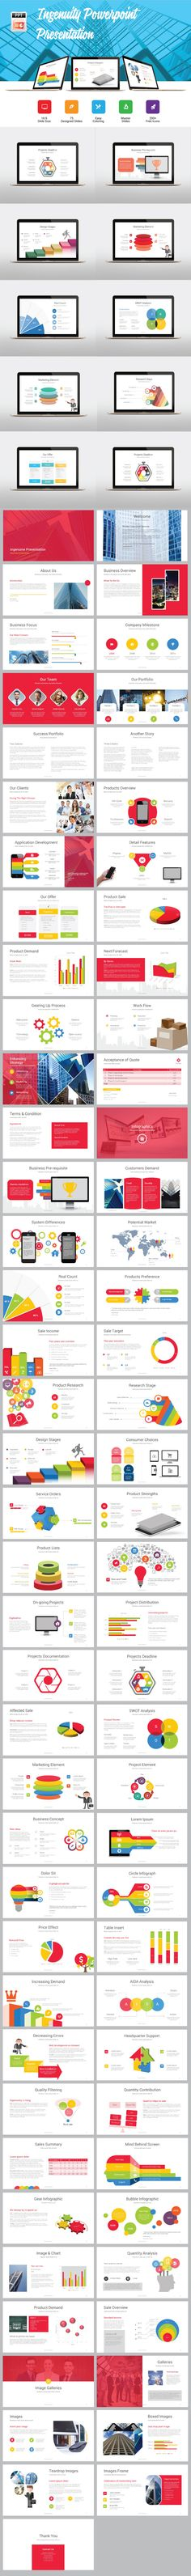 Ingenuity Business Presentation PowerPoint Template #design Download: http://graphicriver.net/item/ingenuity-business-presentation/12380875?ref=ksioks